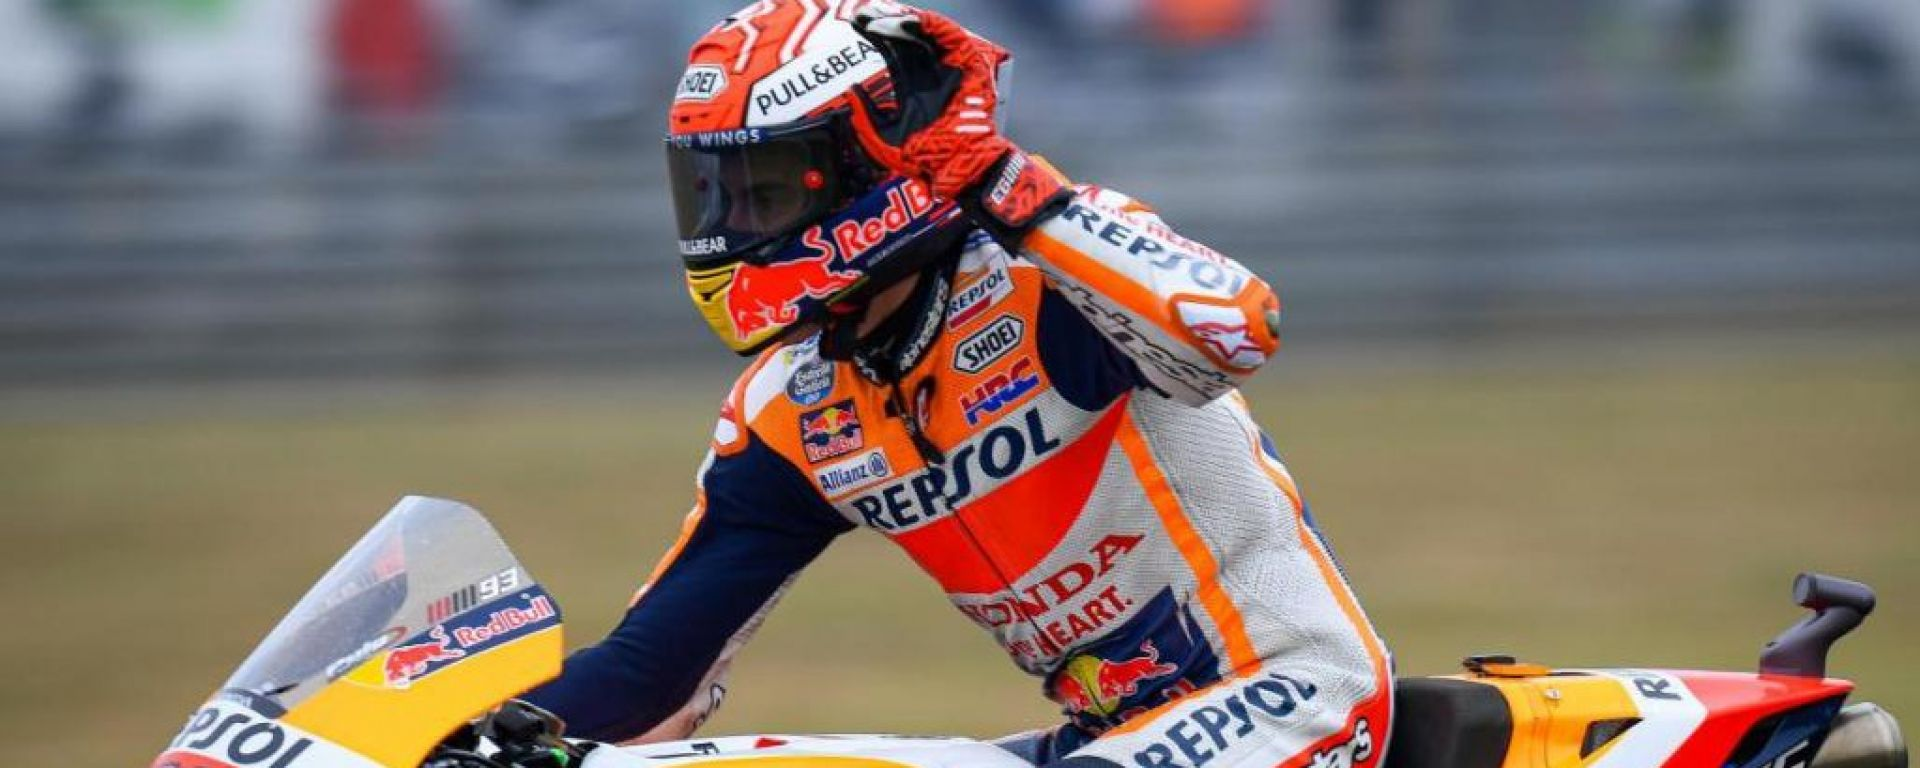 Marquez in pole a LeMans